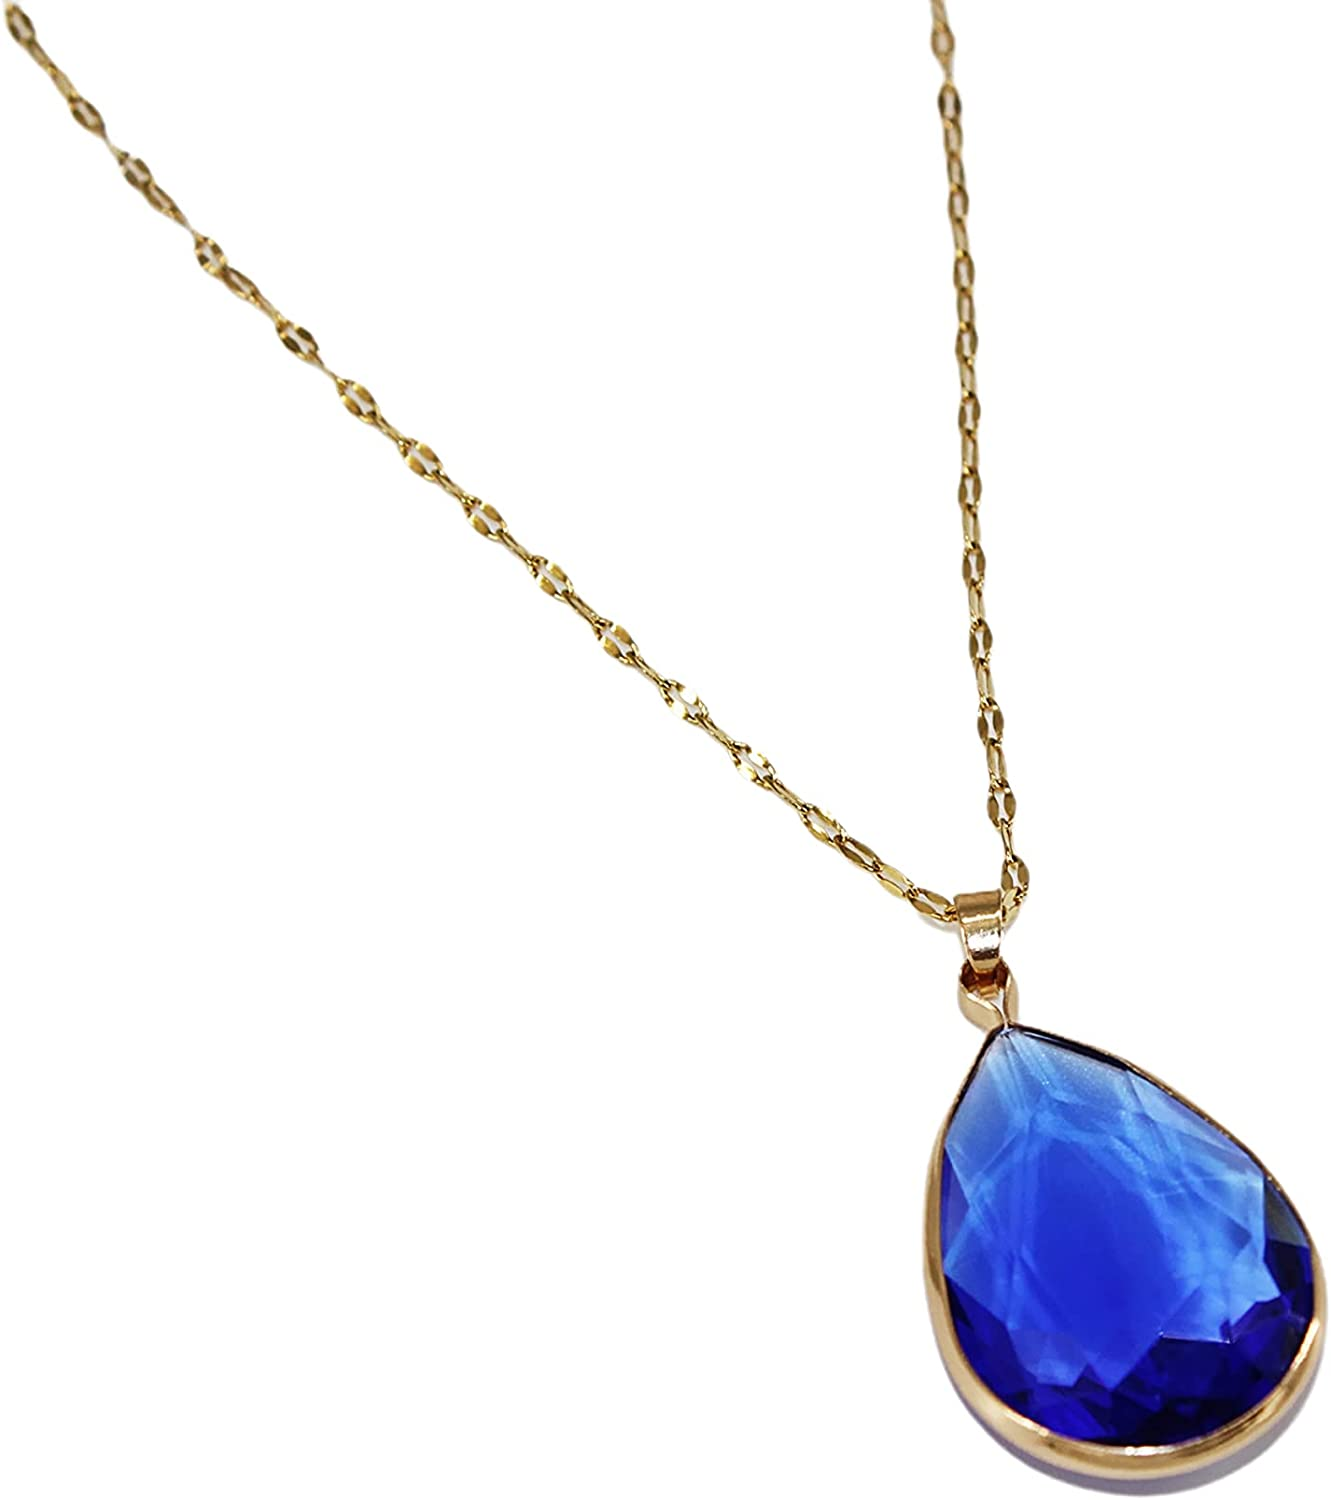 Qianxiang handmade 18K Gold Plated y pendant necklace natural water drop Crystal Necklace adjustable necklace women's necklace 2021